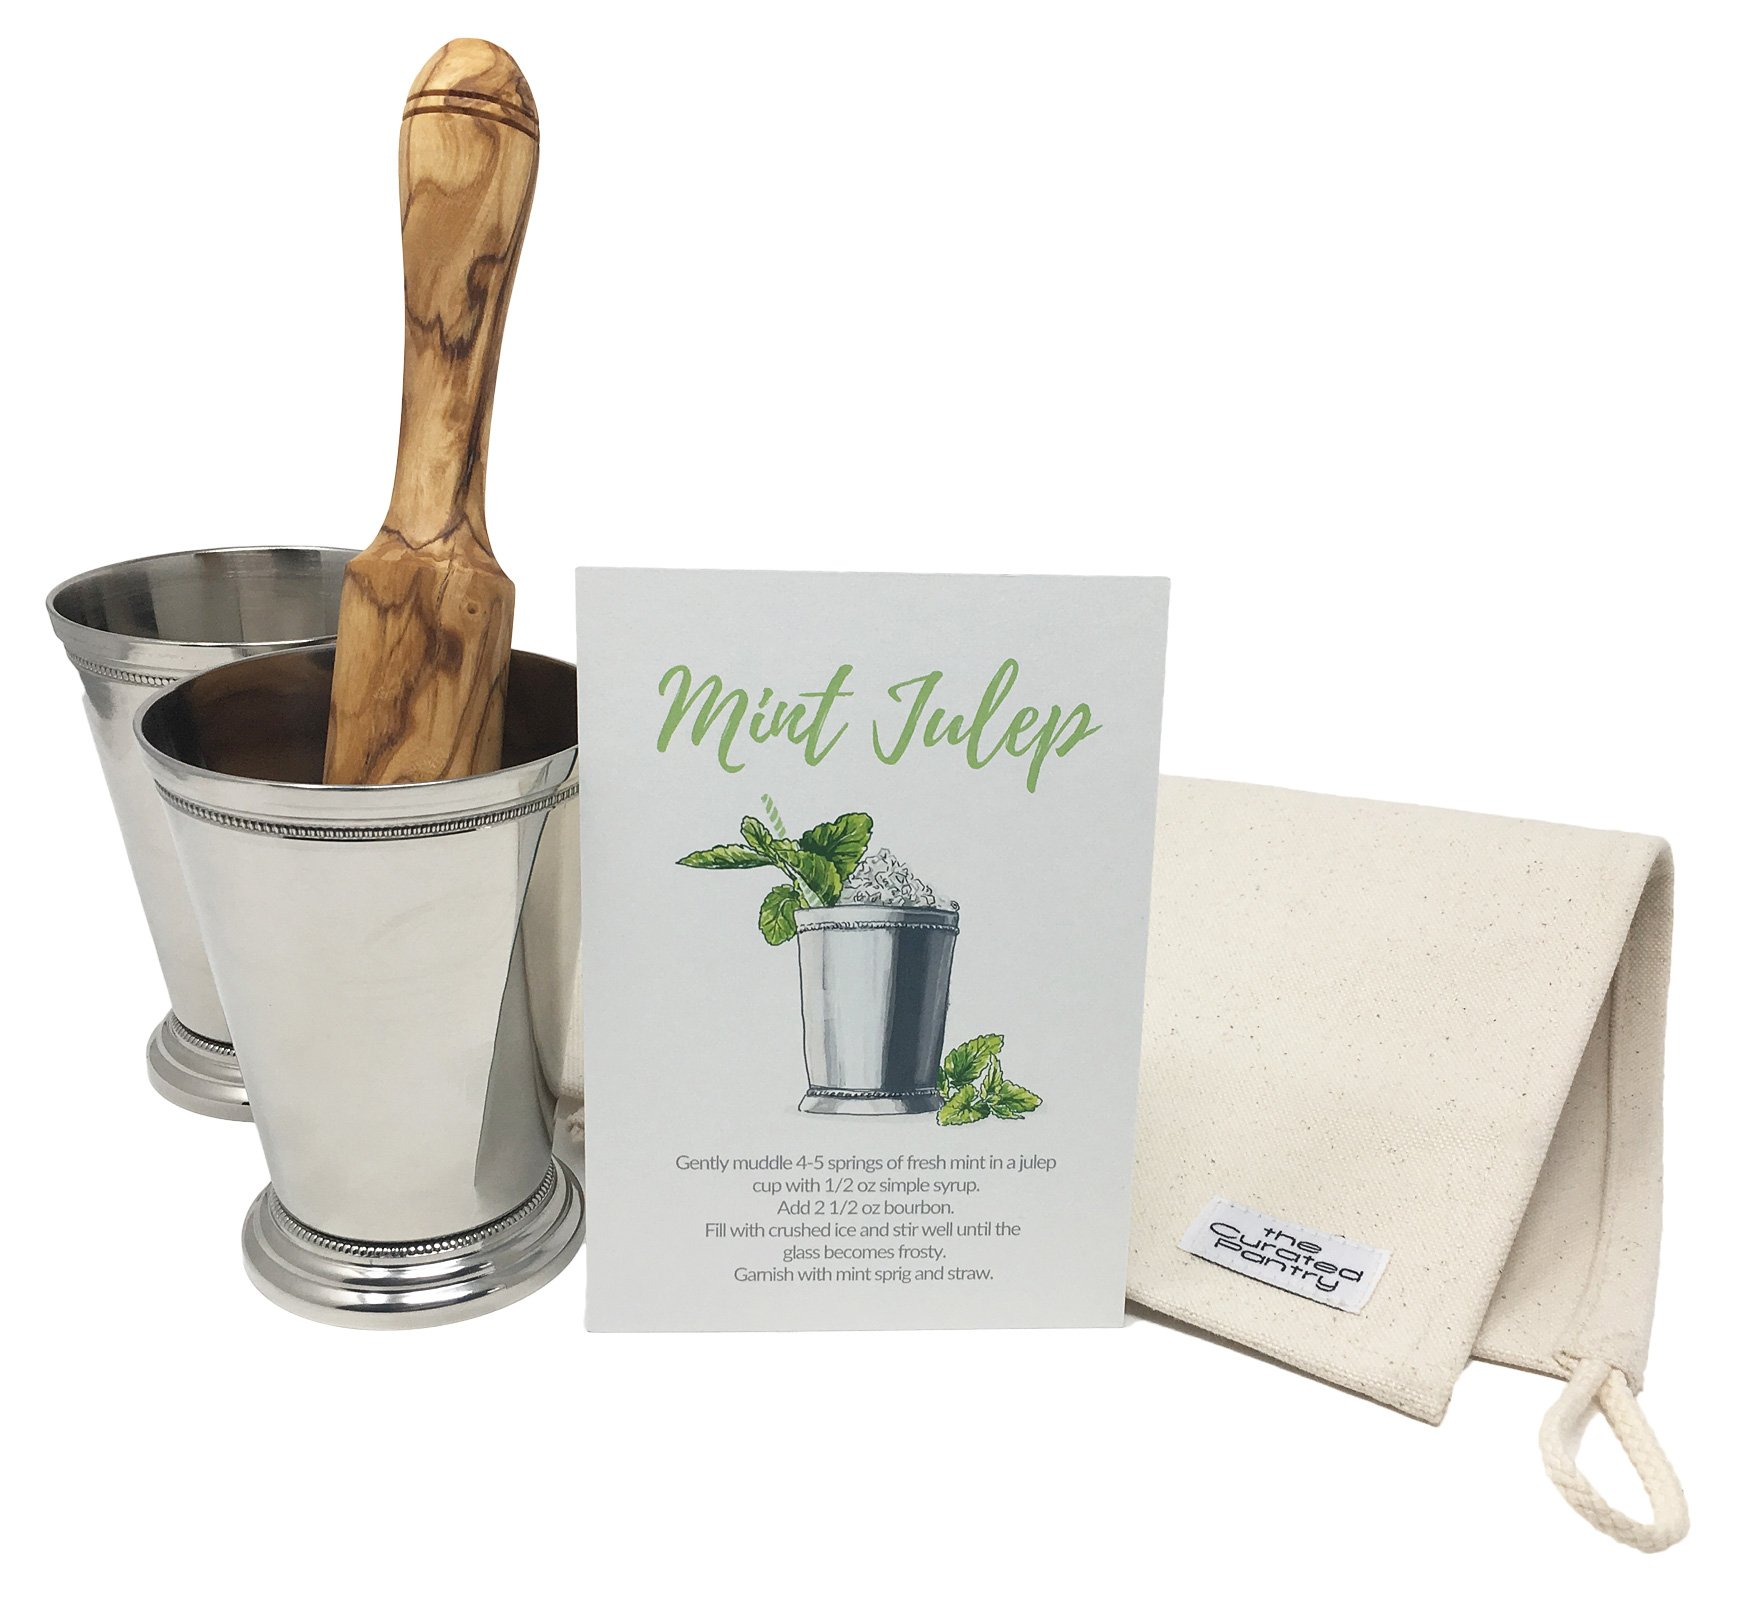 Mint Julep Cocktail Essential Tool Kit - (2) 12oz Cups, Lewis Bag, Muddler/Mallet and Recipe Card (5 items) by The Curated Pantry (Image #5)